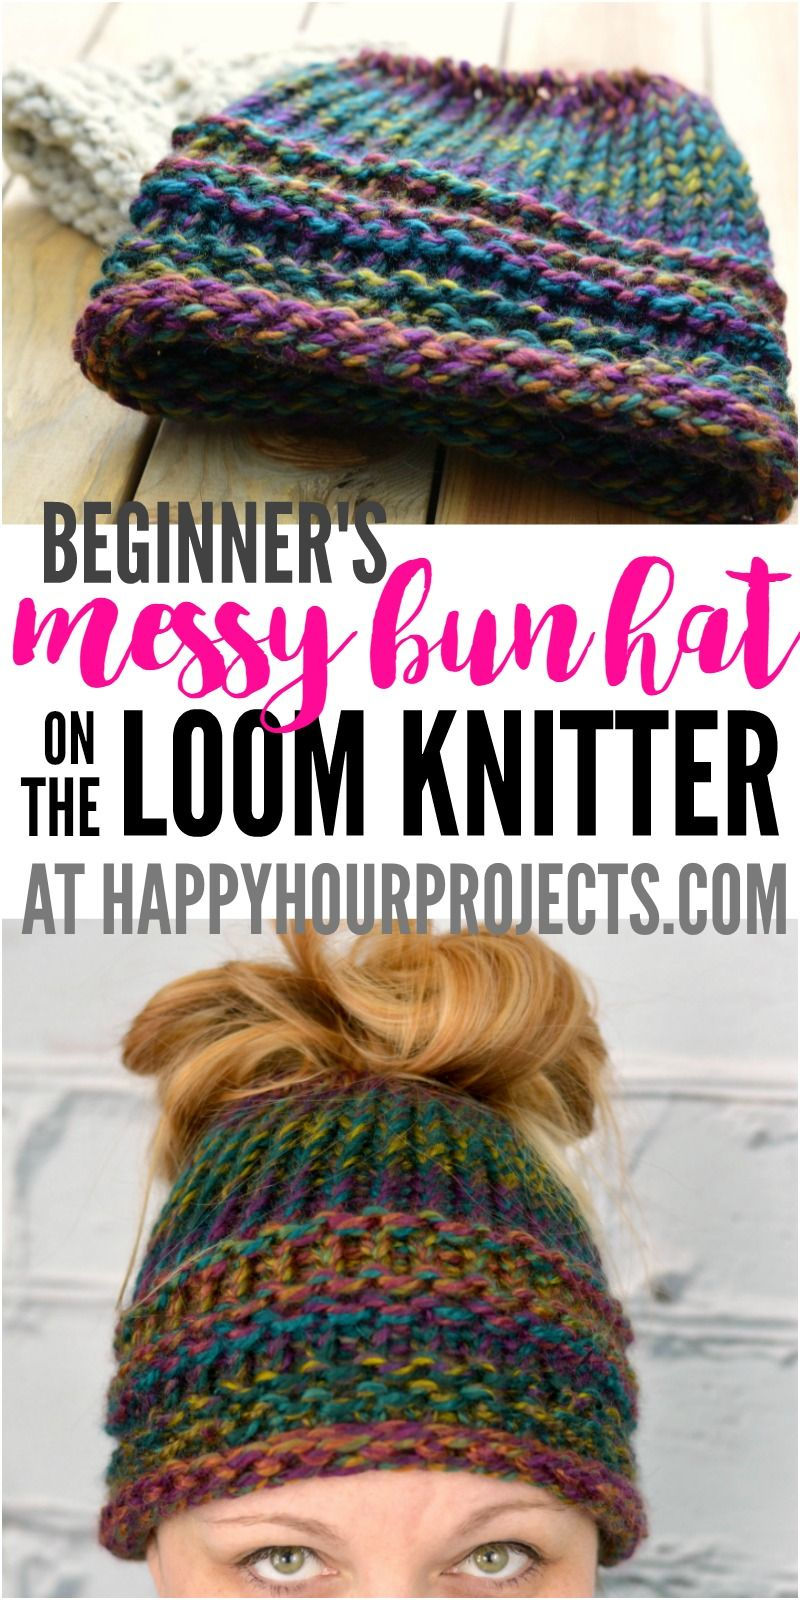 Beginners messy bun hat using the loom knitter at beginners messy bun hat using the loom knitter at happyhourprojects 2 hour bankloansurffo Images